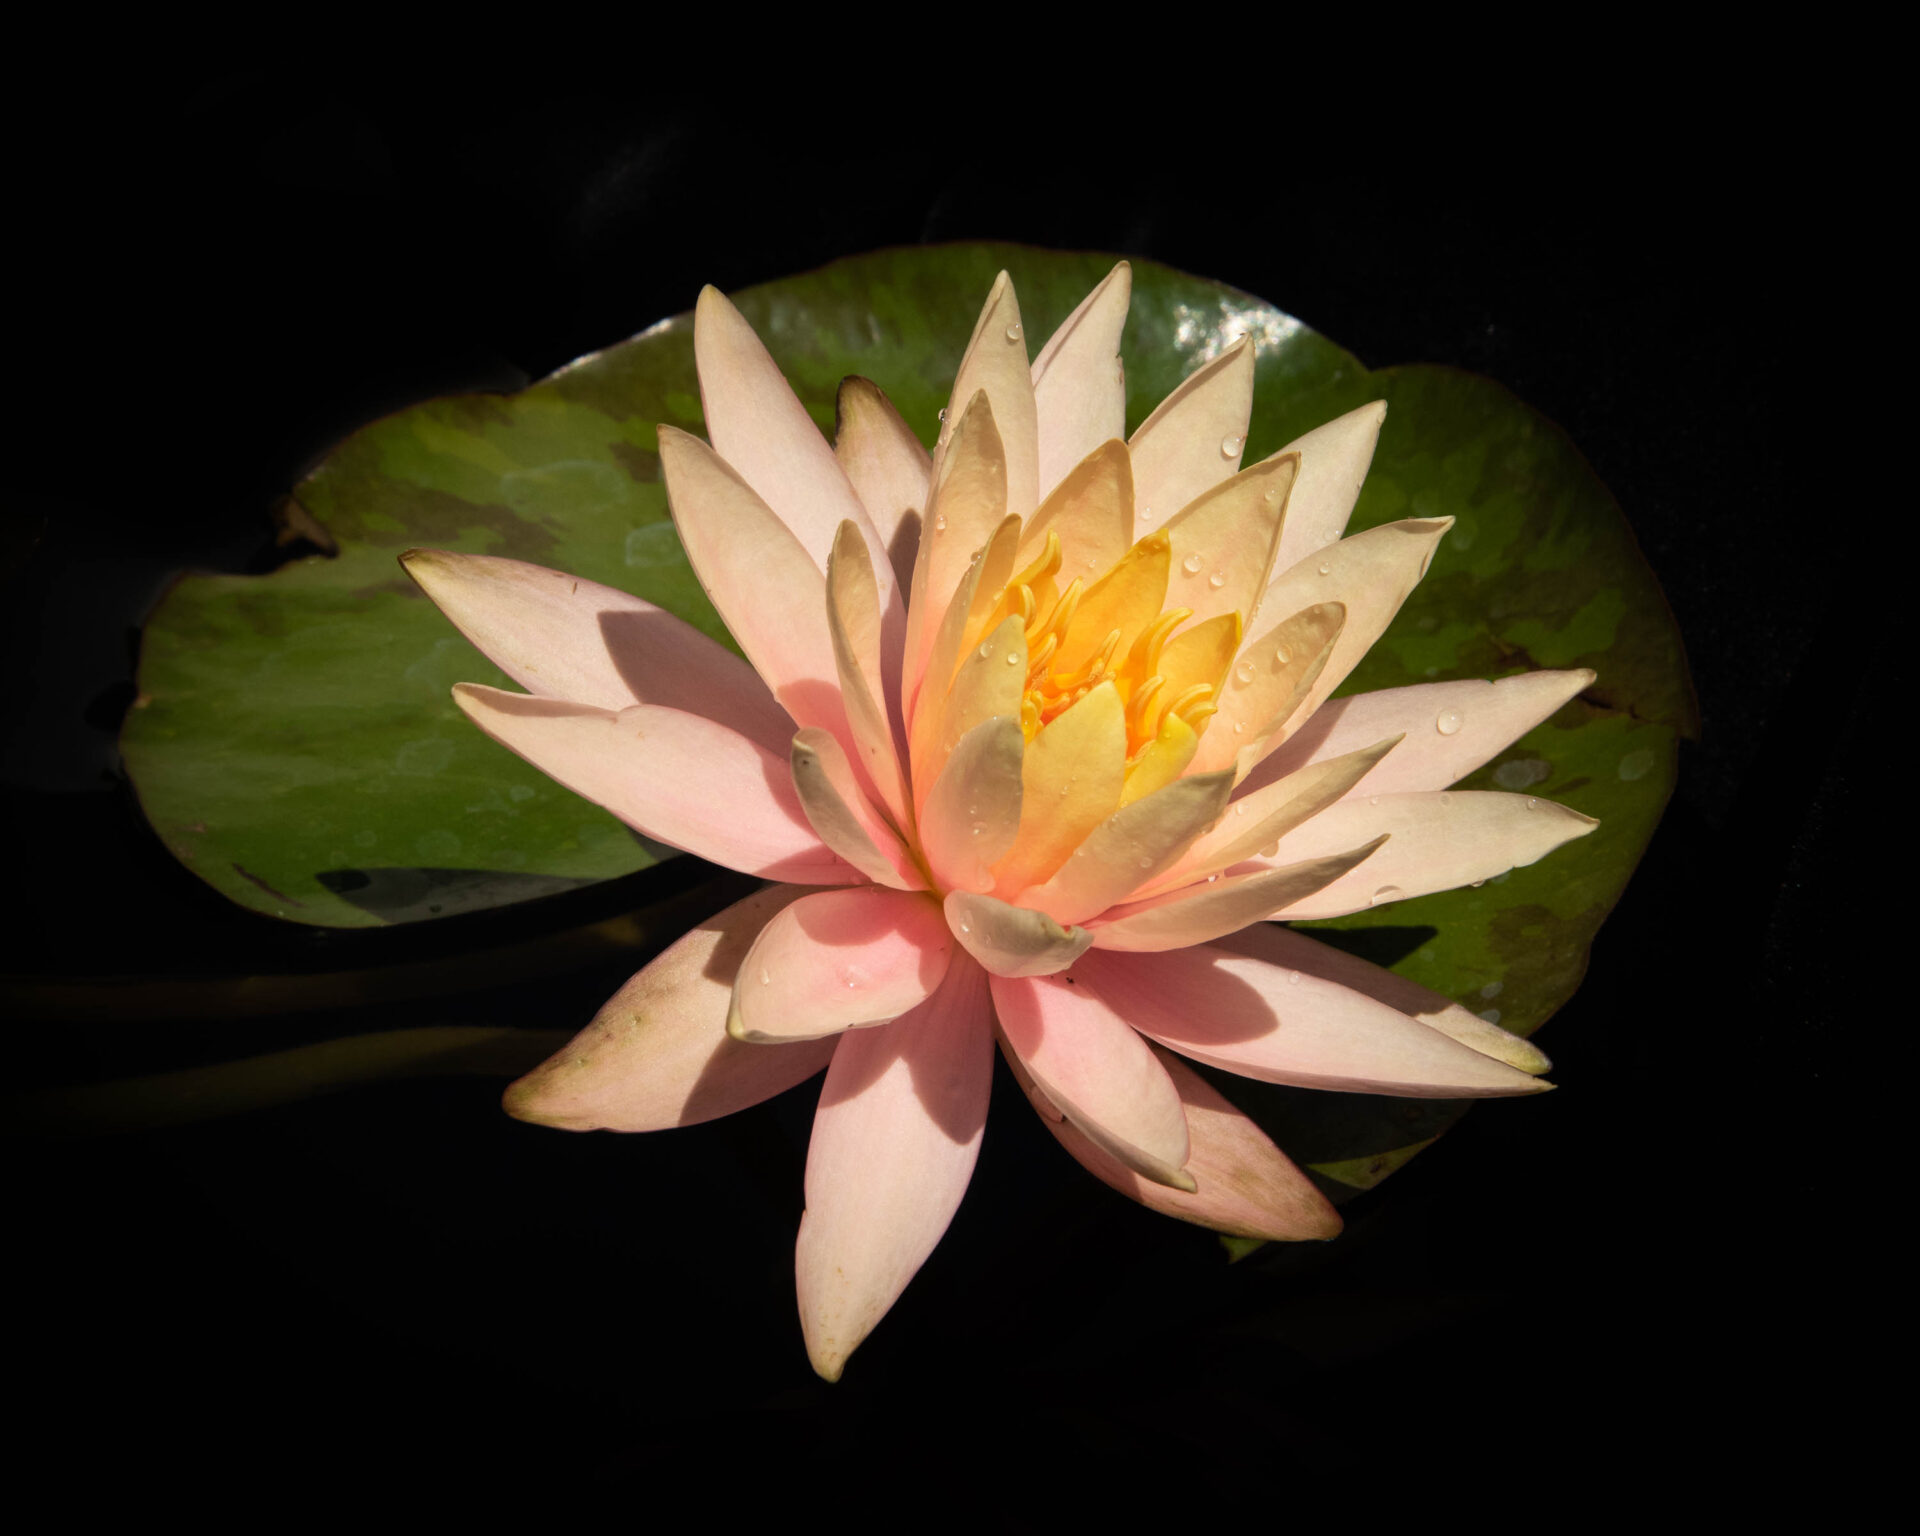 A closeup photograph of a water lily with one large leaf behind it that is shaped like an artist palette.